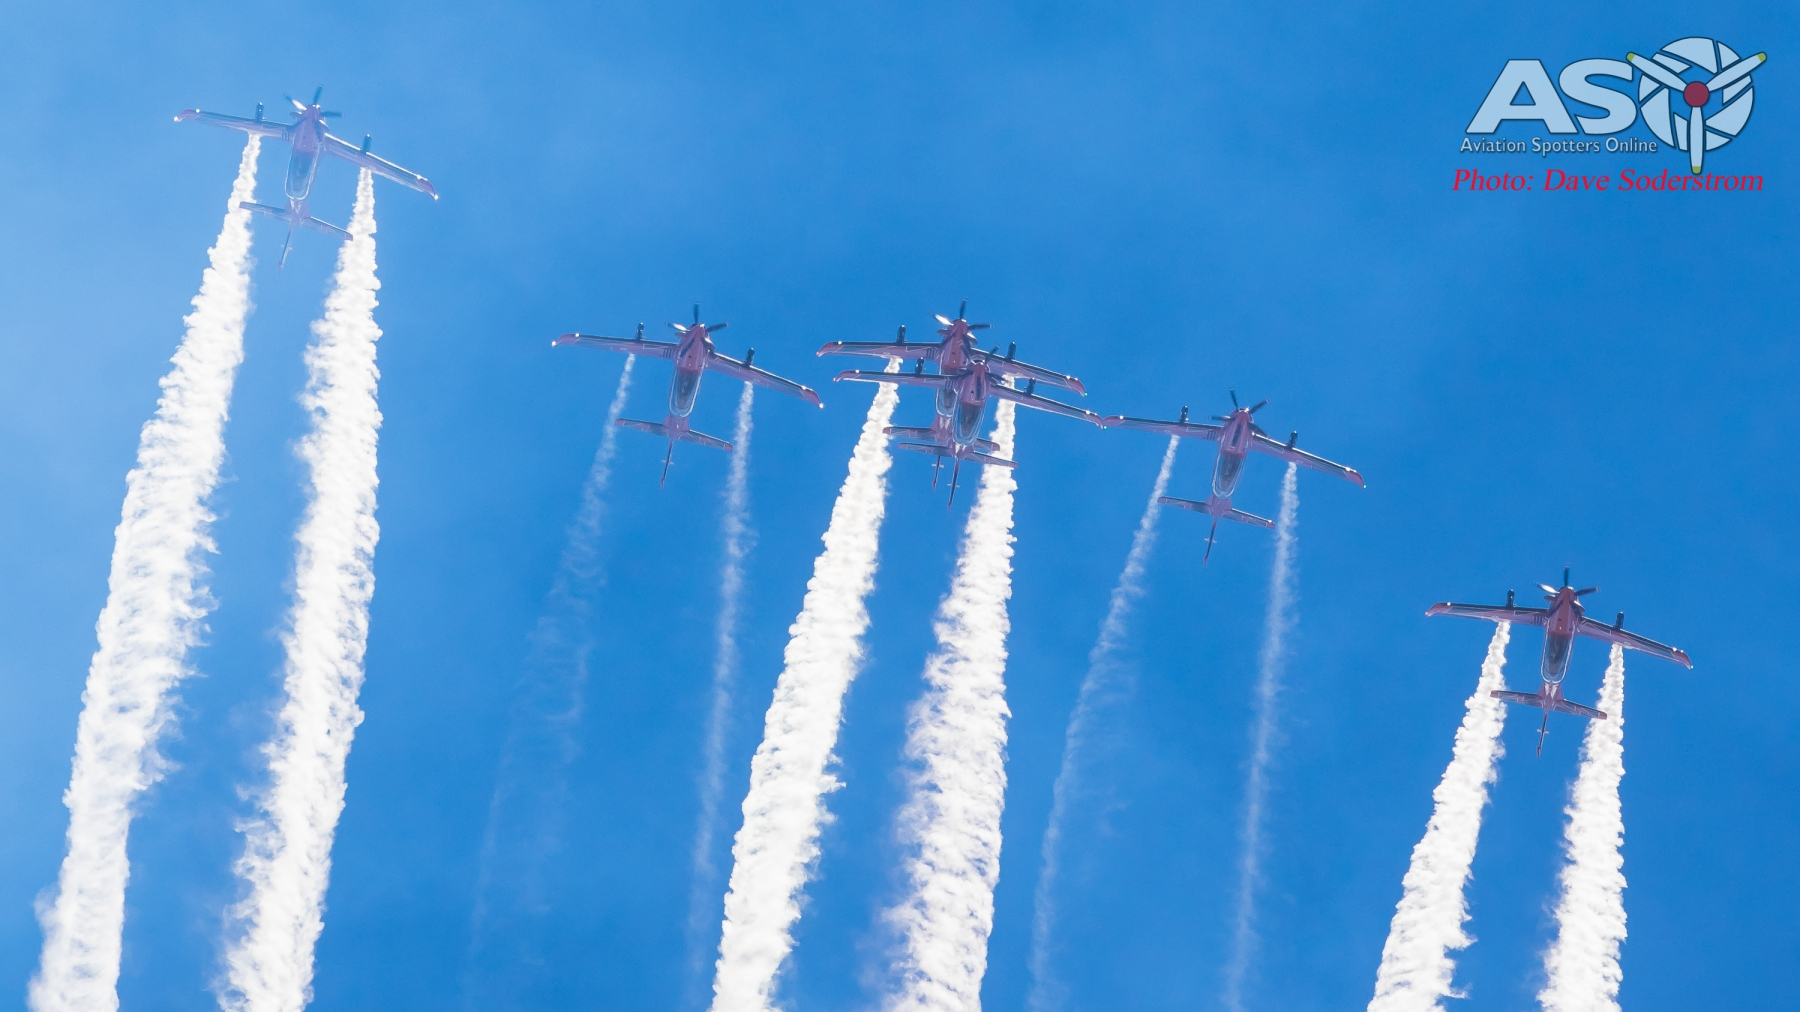 1_ASO-EDN-Airshow-2019-120-1-of-1